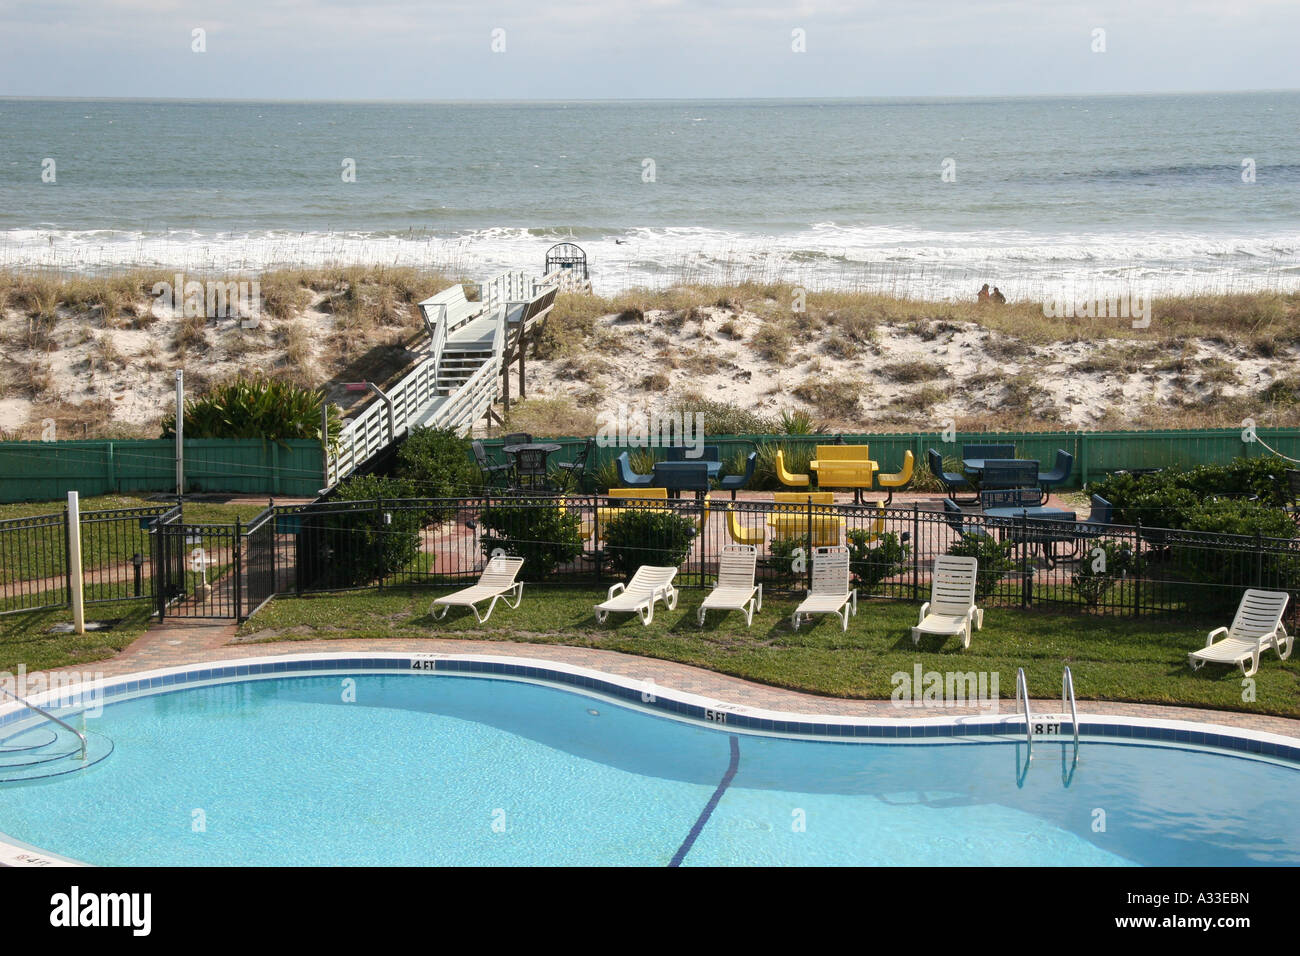 Swimming Pool And Ocean View Of The Sea Horse Oceanfront Inn Hotel Stock Photo Royalty Free